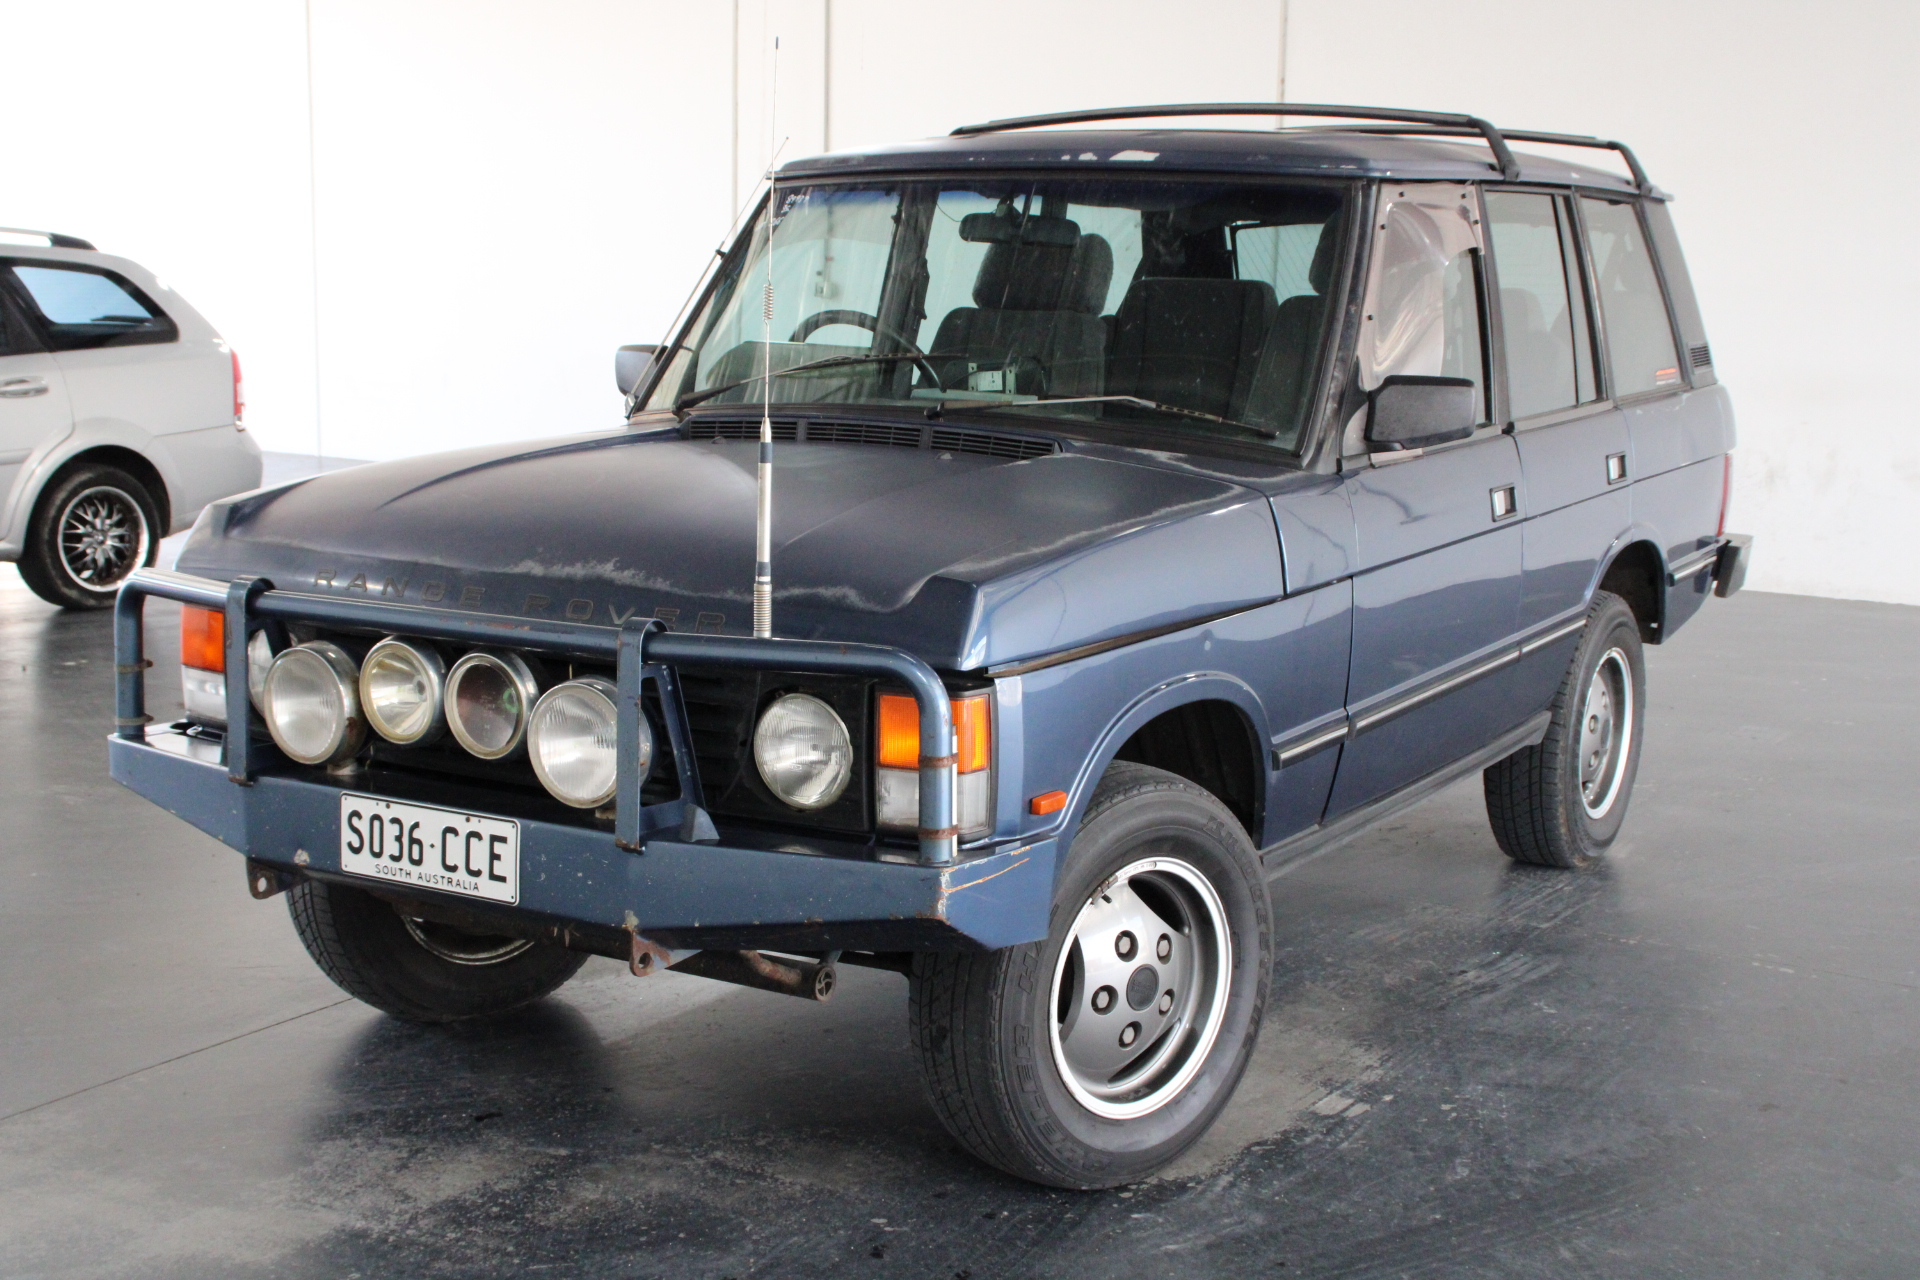 1992 Land Rover Range Rover Automatic Wagon